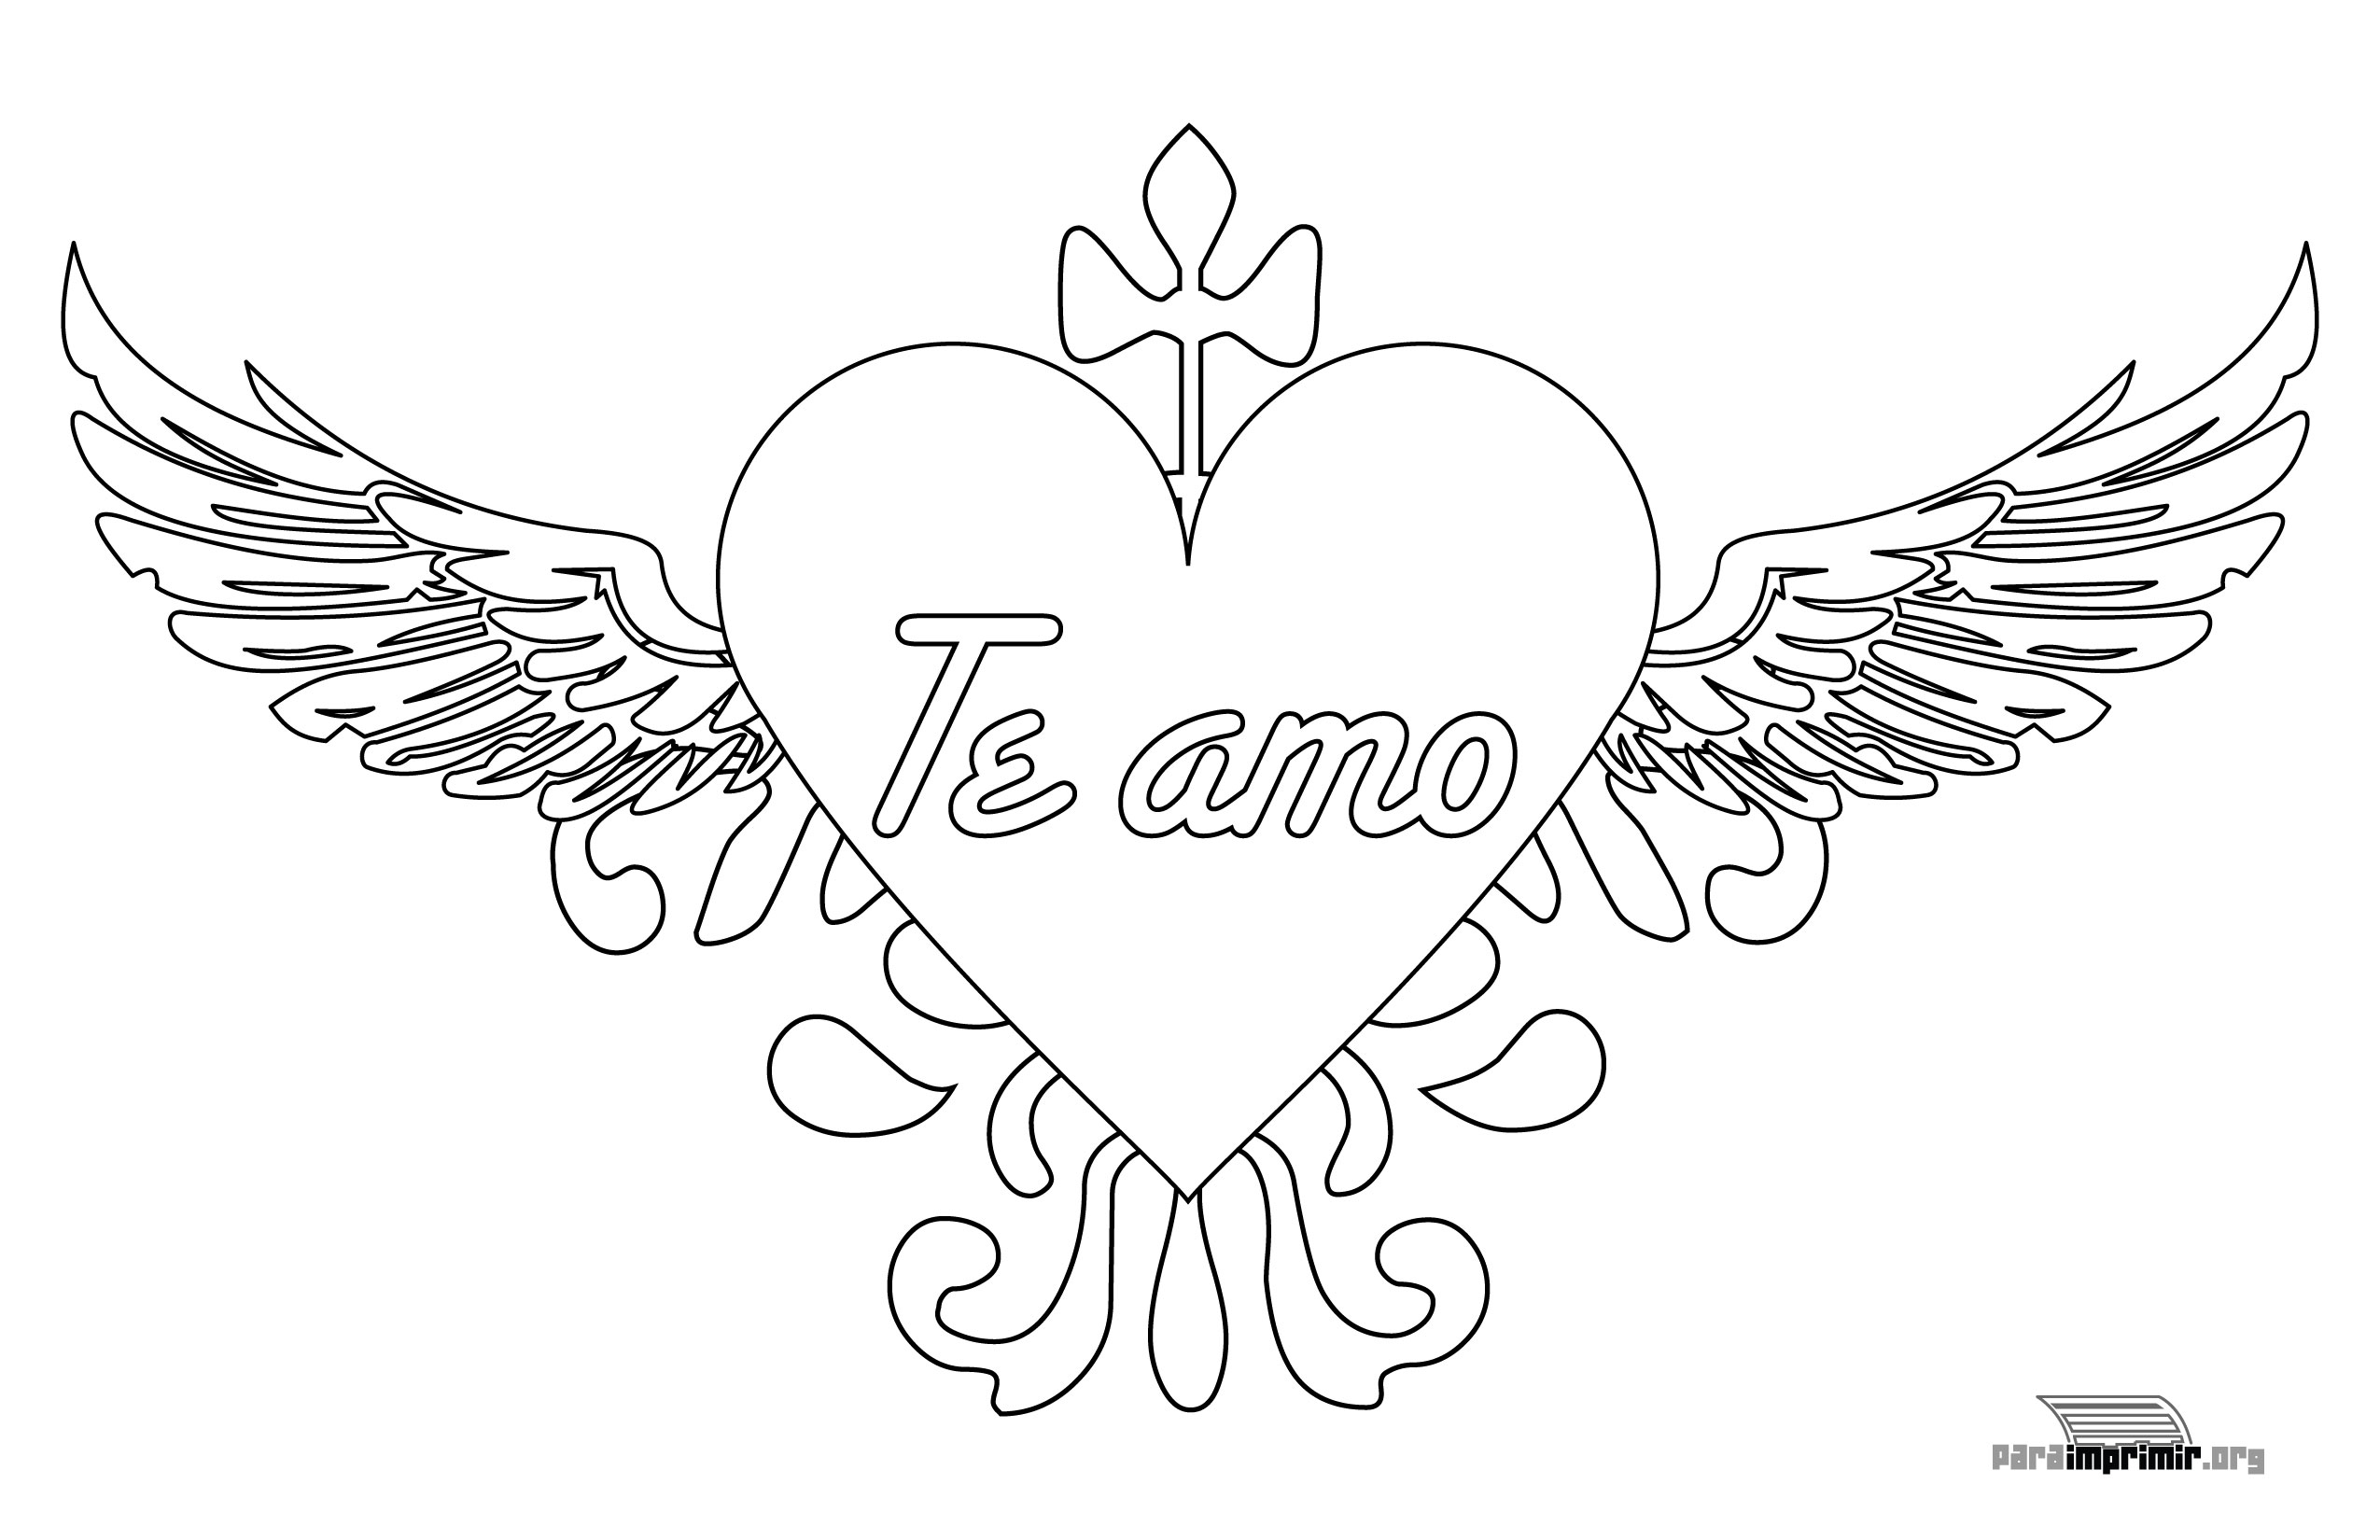 Adult Cute Te Amo Coloring Pages Images best 74 corazones de amor para pintar imprimir descargar y regalar flajk6gh8 images